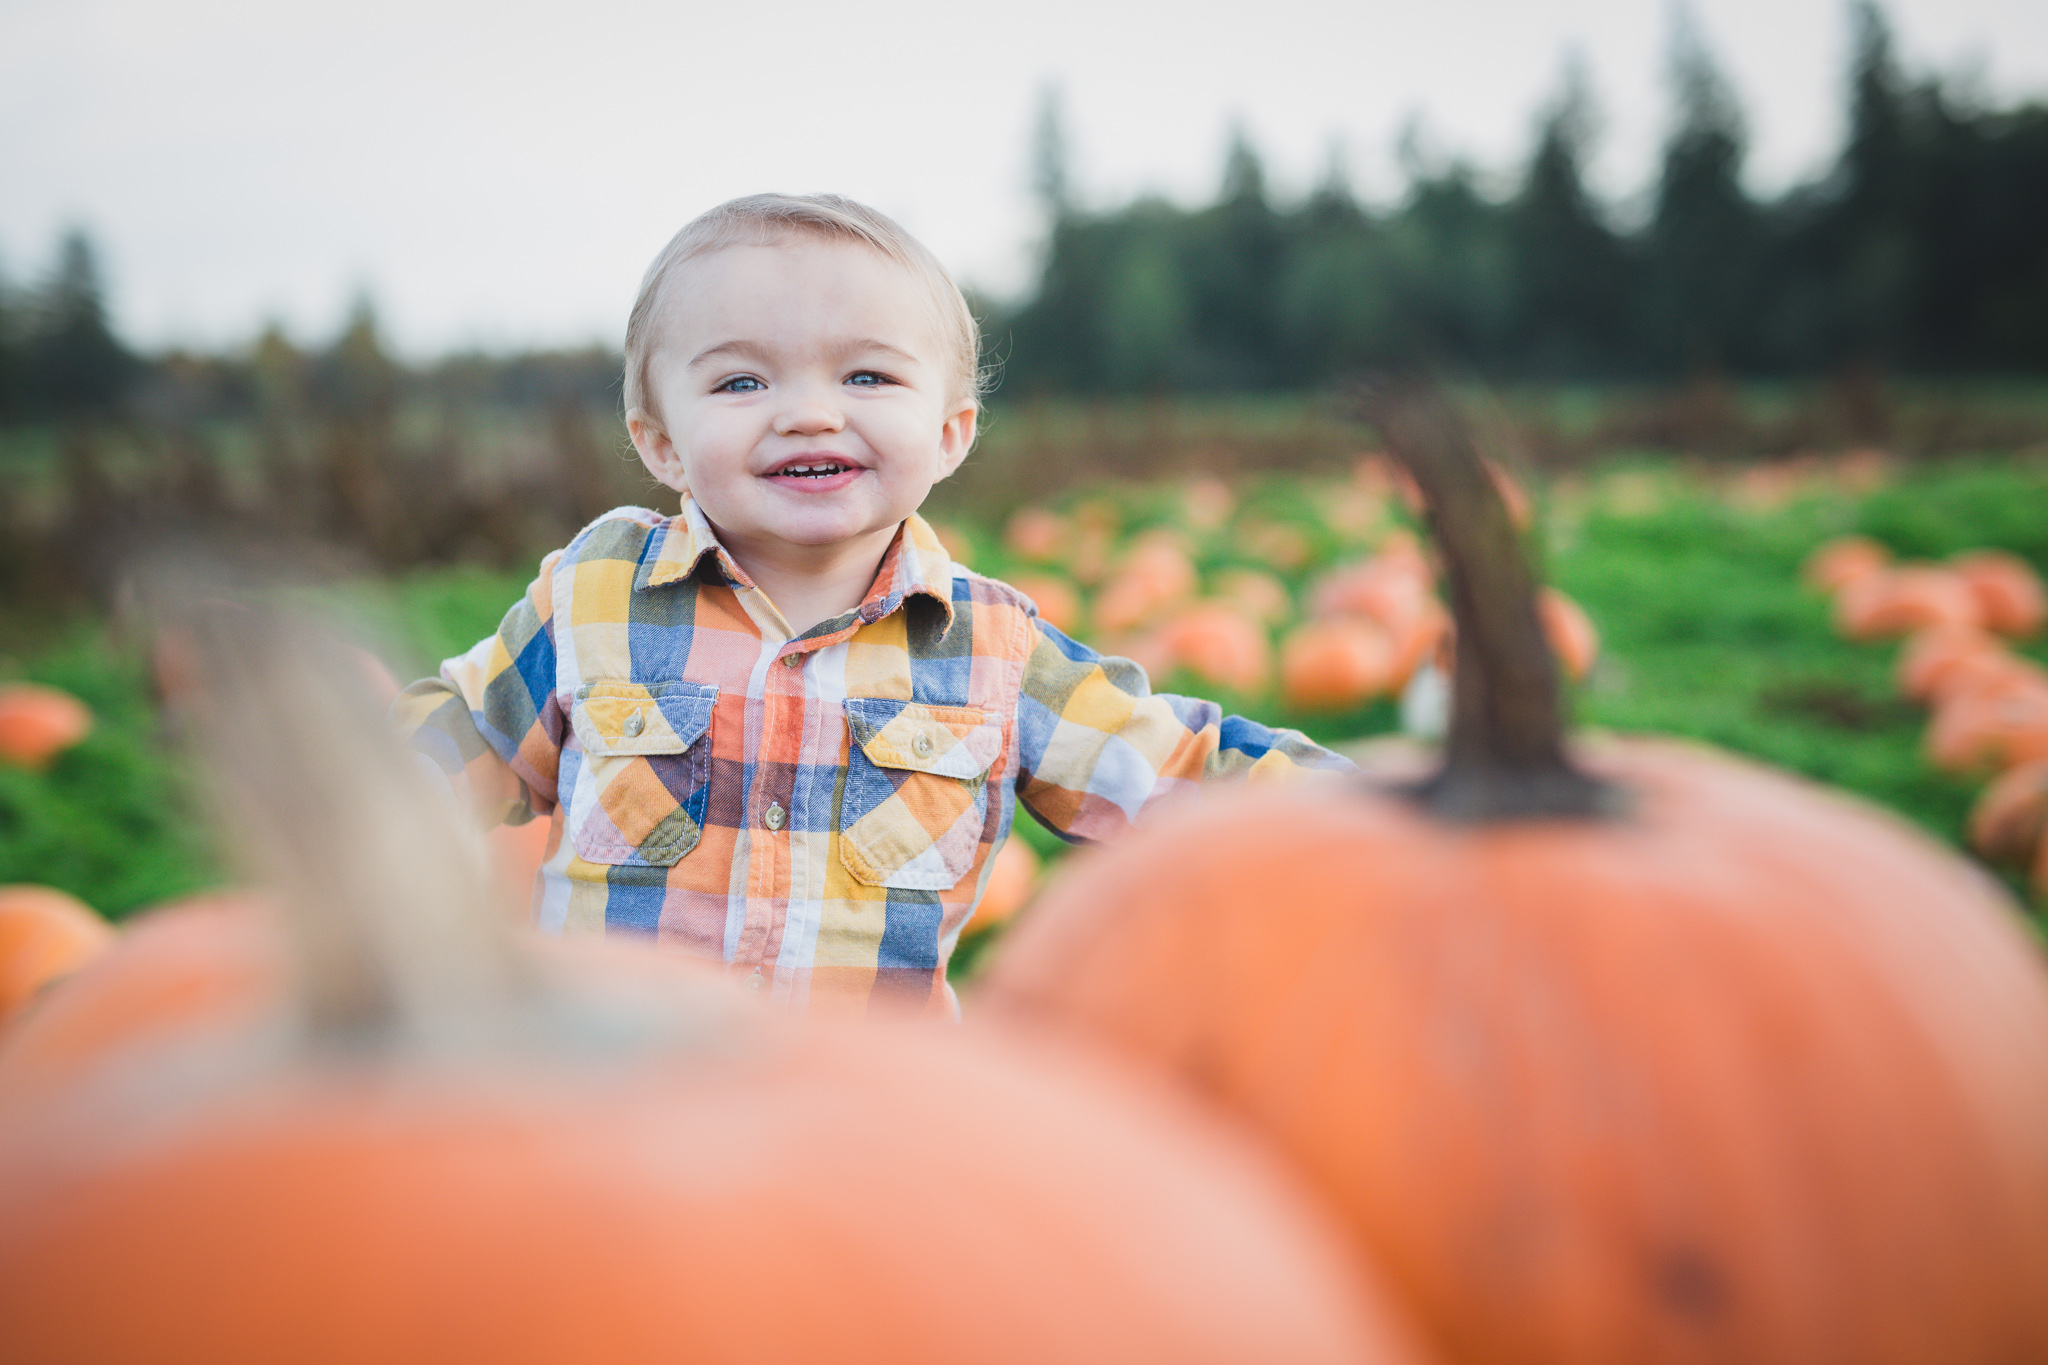 family photographer fraser valley, family photographer cloverdale, pumpkin patch photos, pumpkin patch family photos, rondriso farms pumpkin patch, baby photography